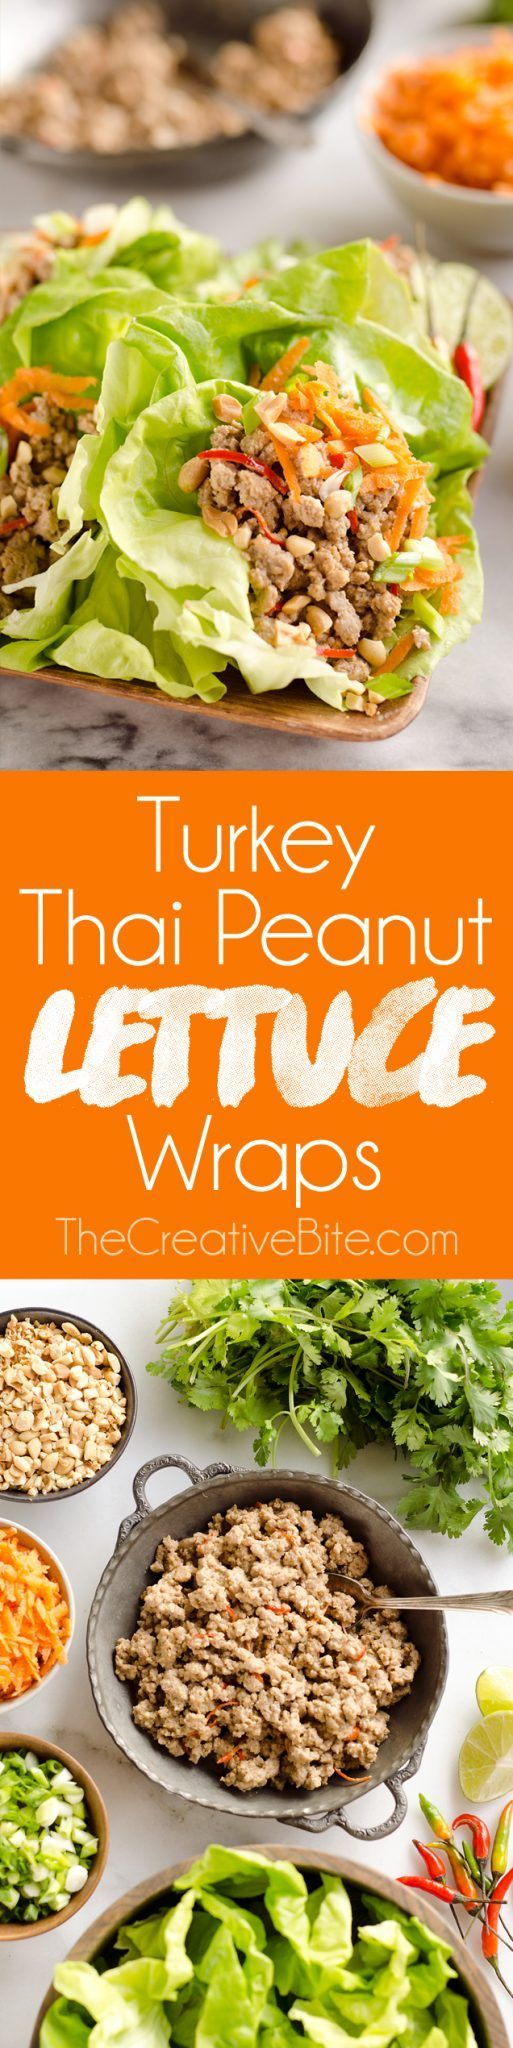 Turkey Thai Peanut Lettuce Wraps are a light and healthy dinner idea packed with filling ground turkey, fresh vegetables and crunch peanuts. You will make this easy 15 minute recipe over and over because it is just so easy and delicious! #Light #Healthy #Turkey